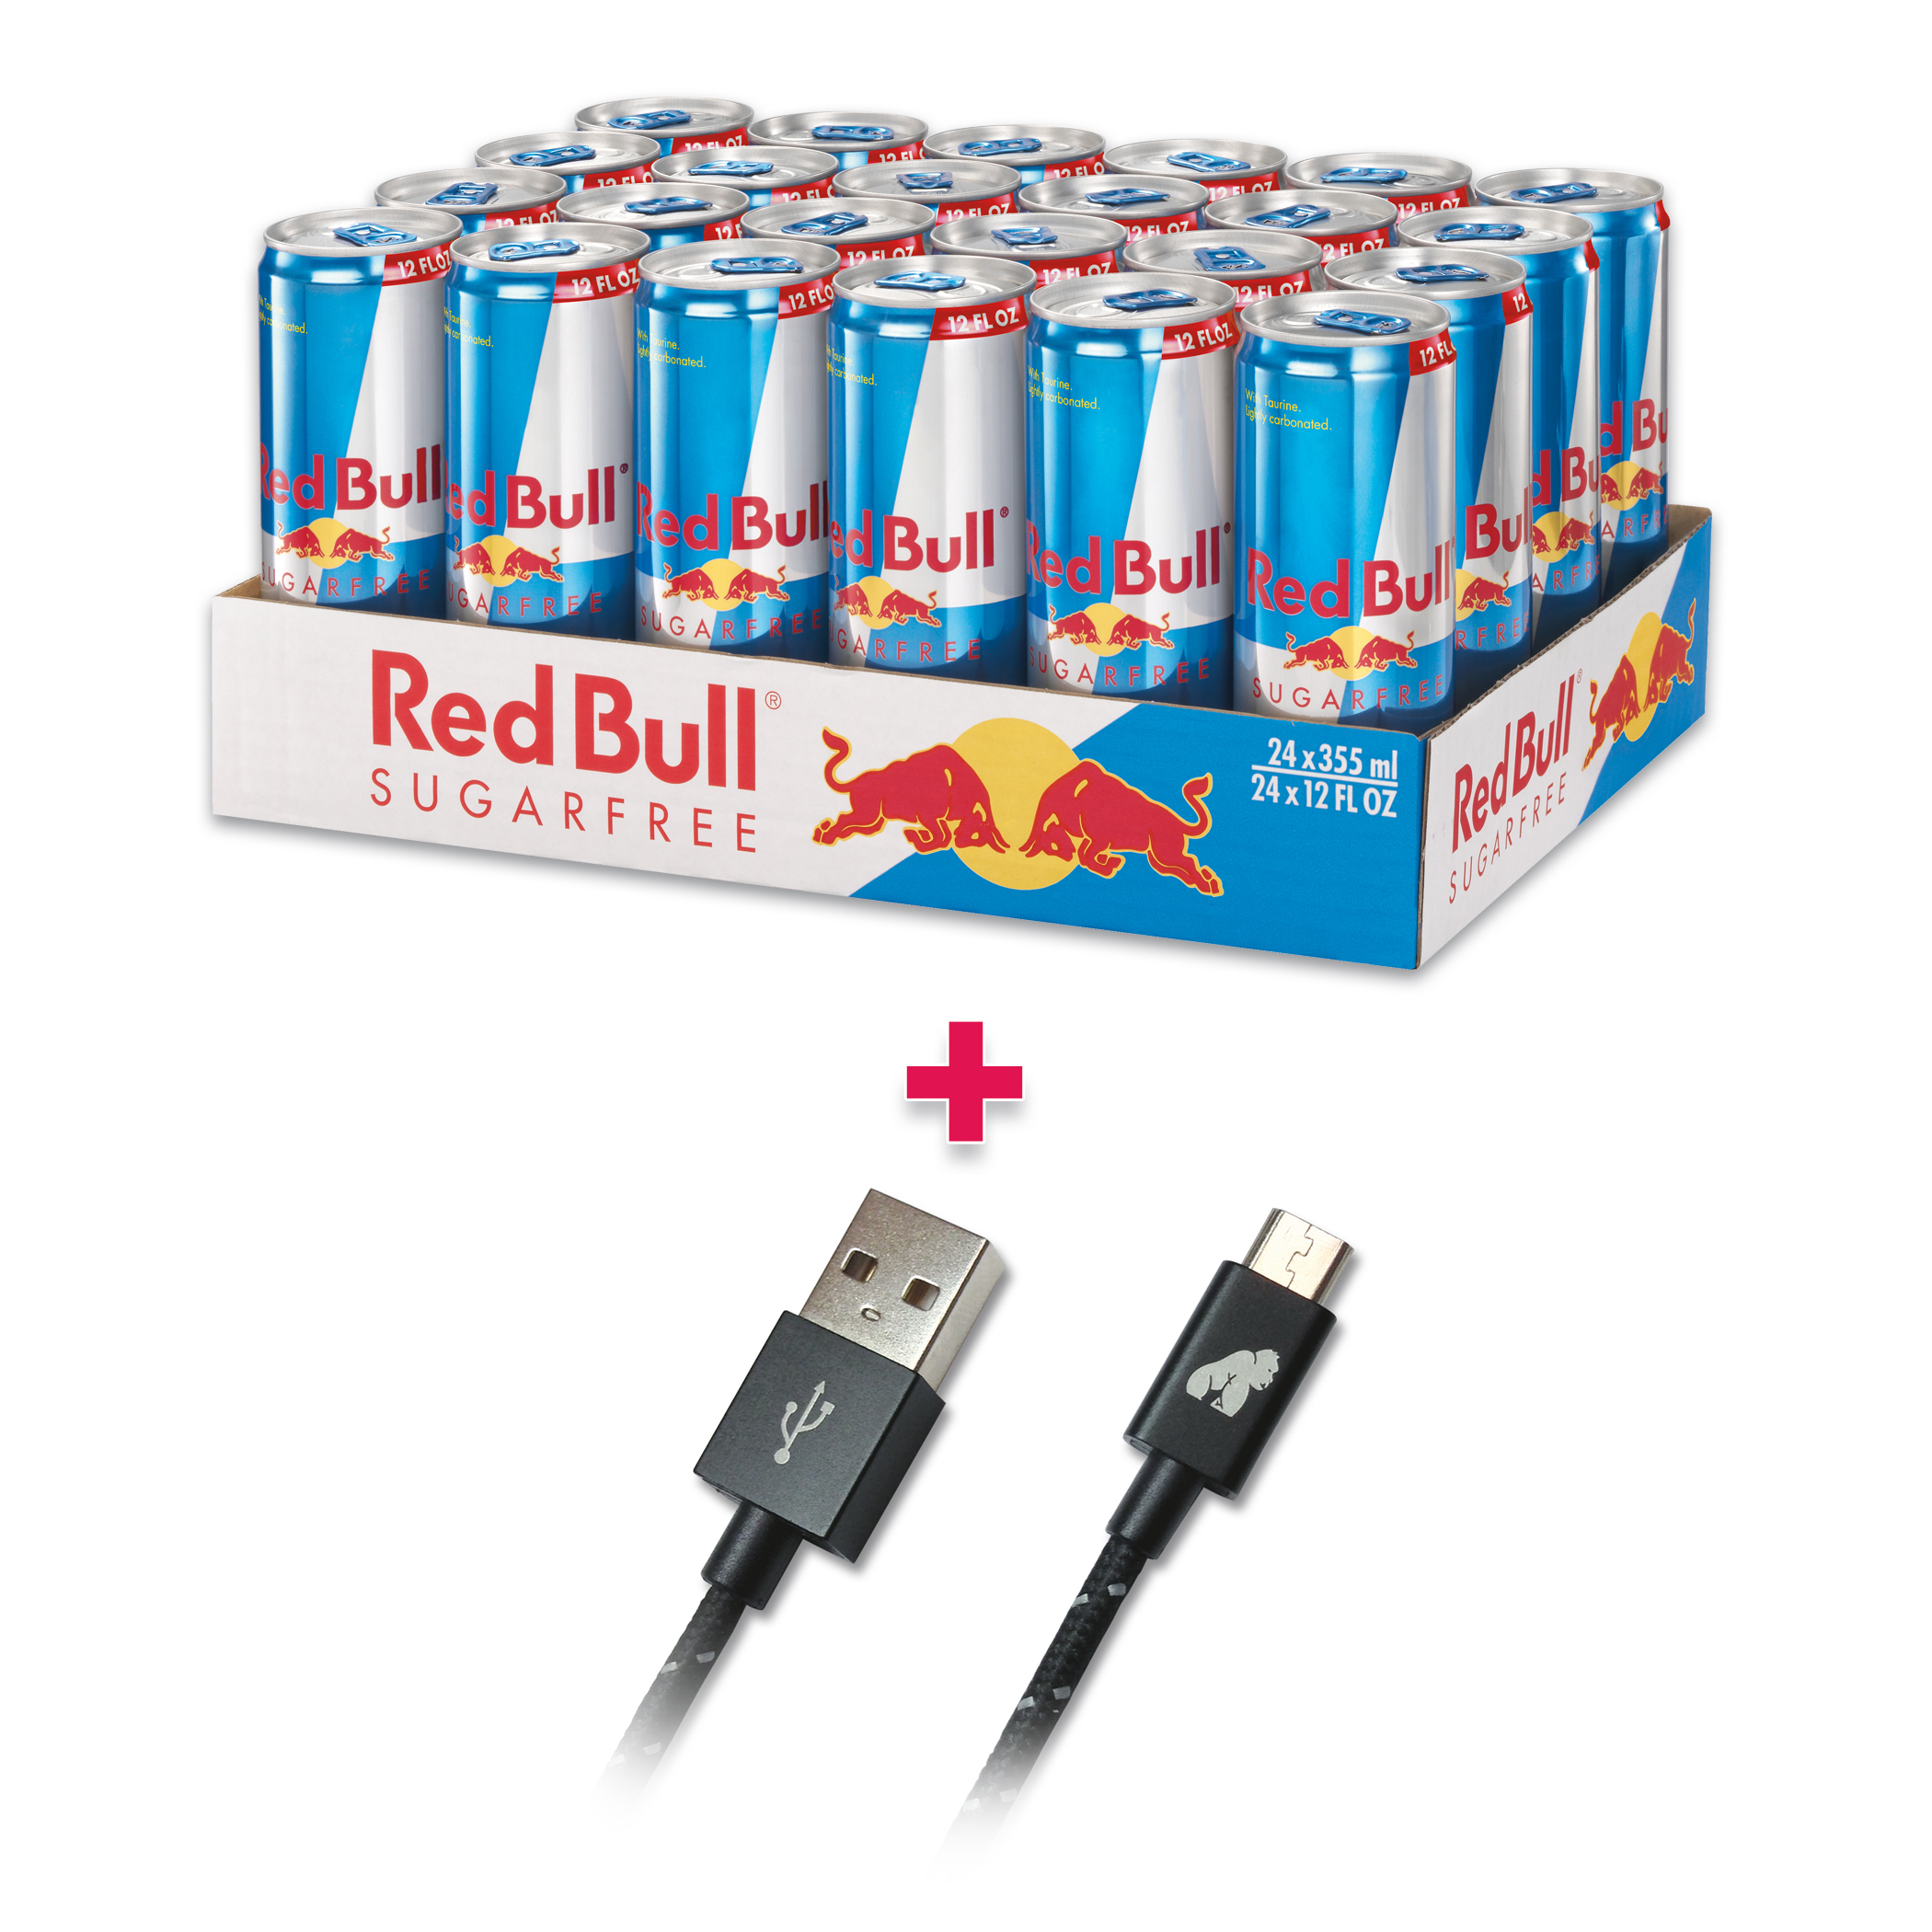 Red Bull 24-Pack 12oz Sugar Free Energy Drink & GorillaDrive 6 ft microUSB Ruggedized USB Cable